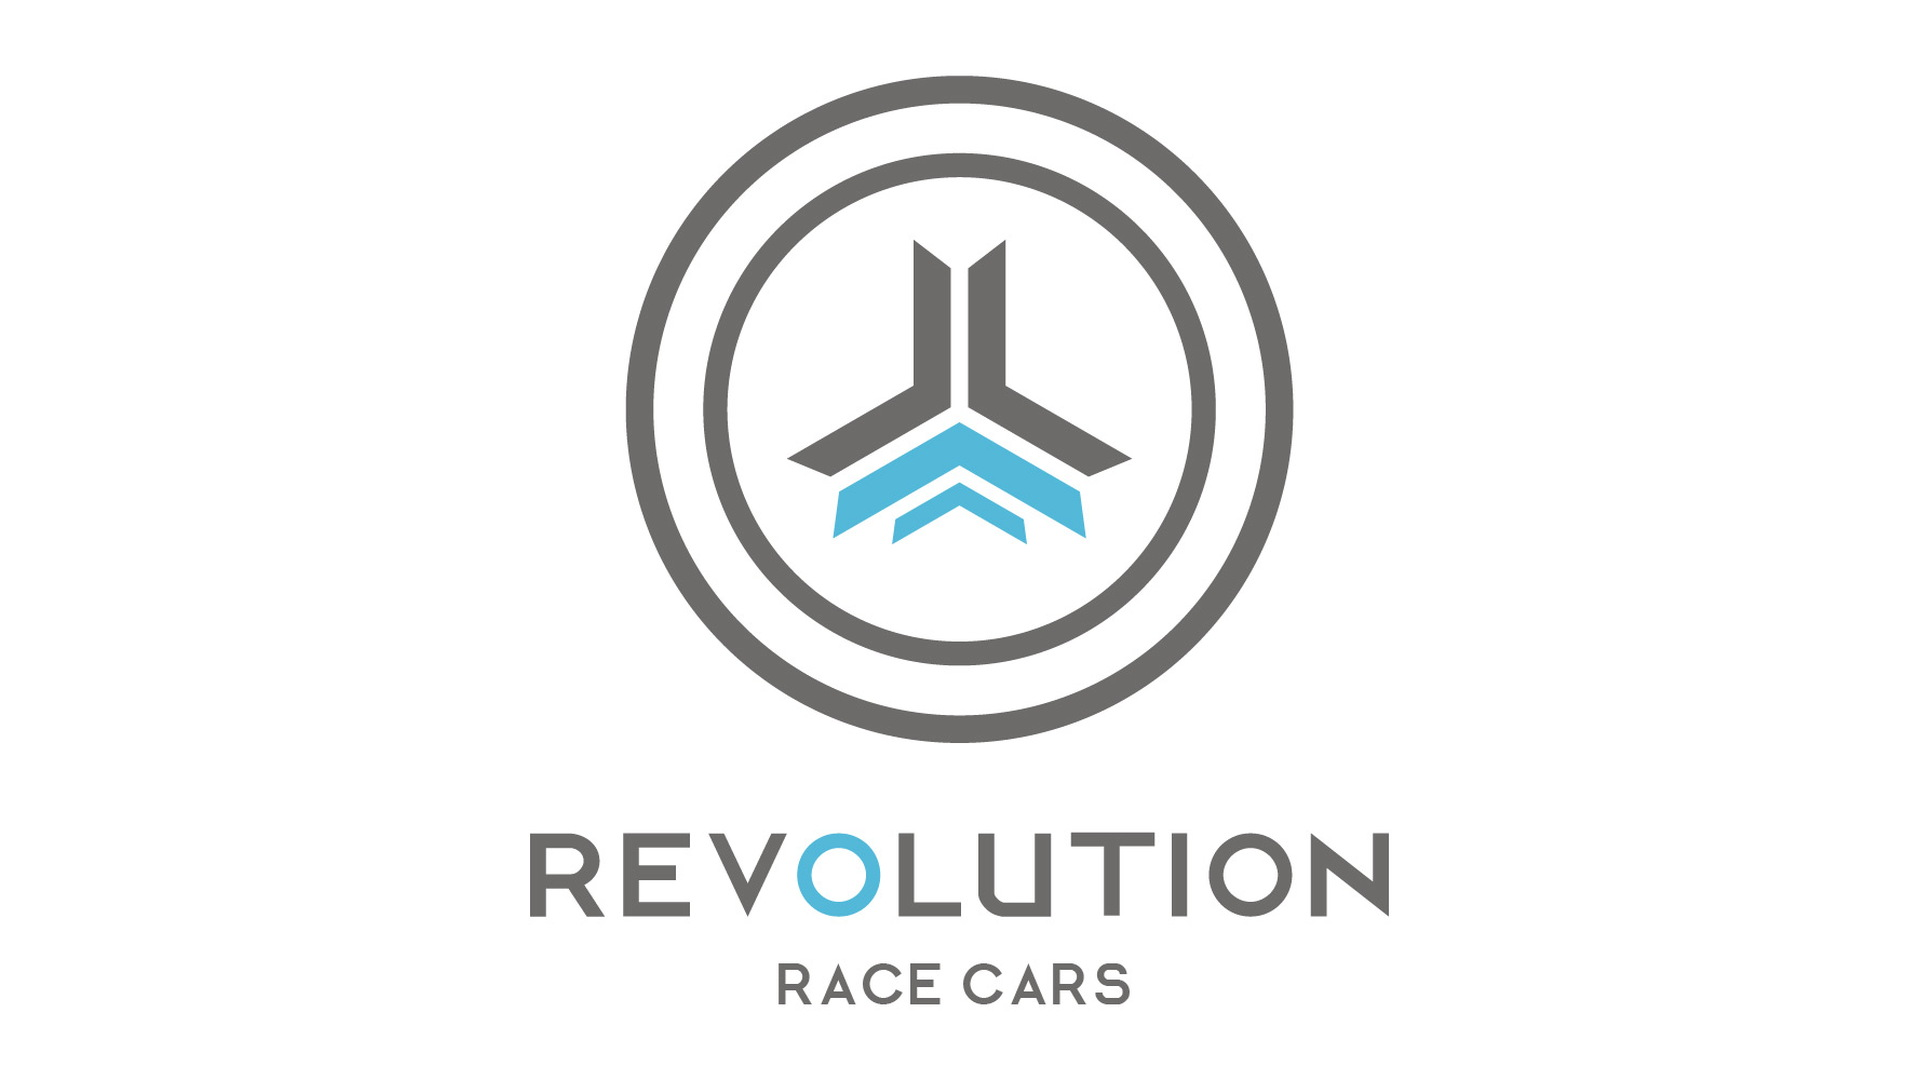 Revolution Race Cars logo